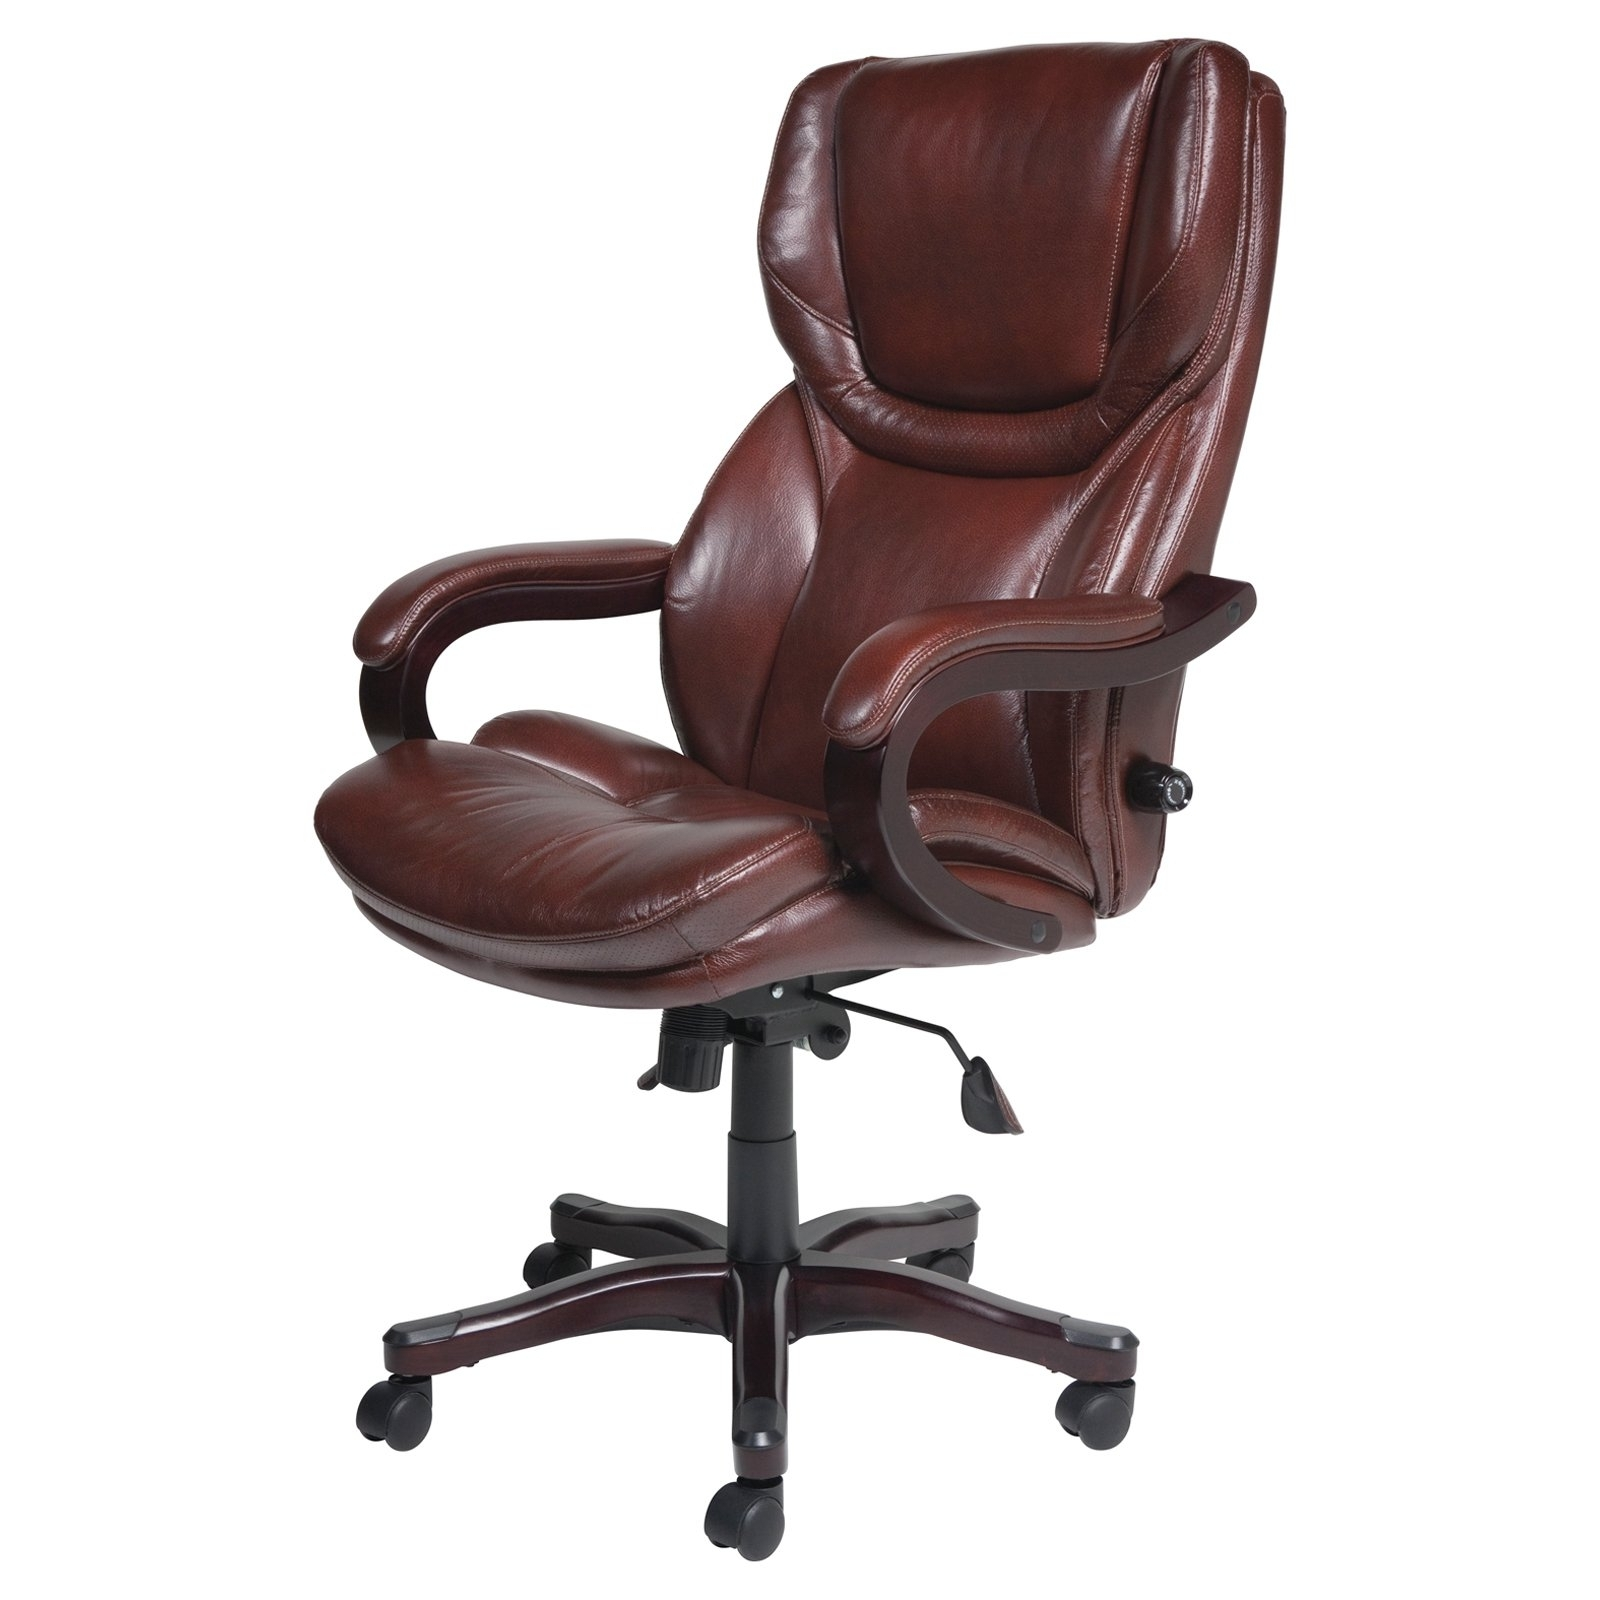 20 inspirations of tan brown mid back executive office chairs